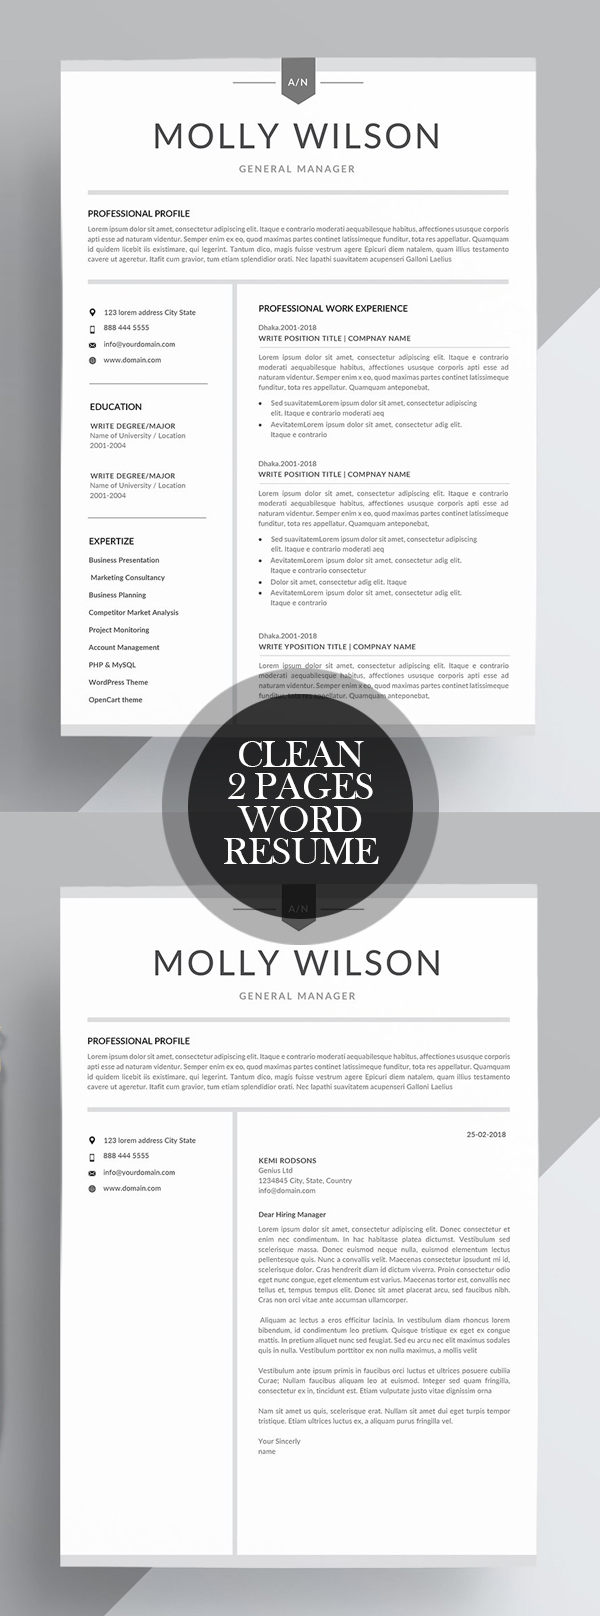 Clean 2 Page Word Resume Template